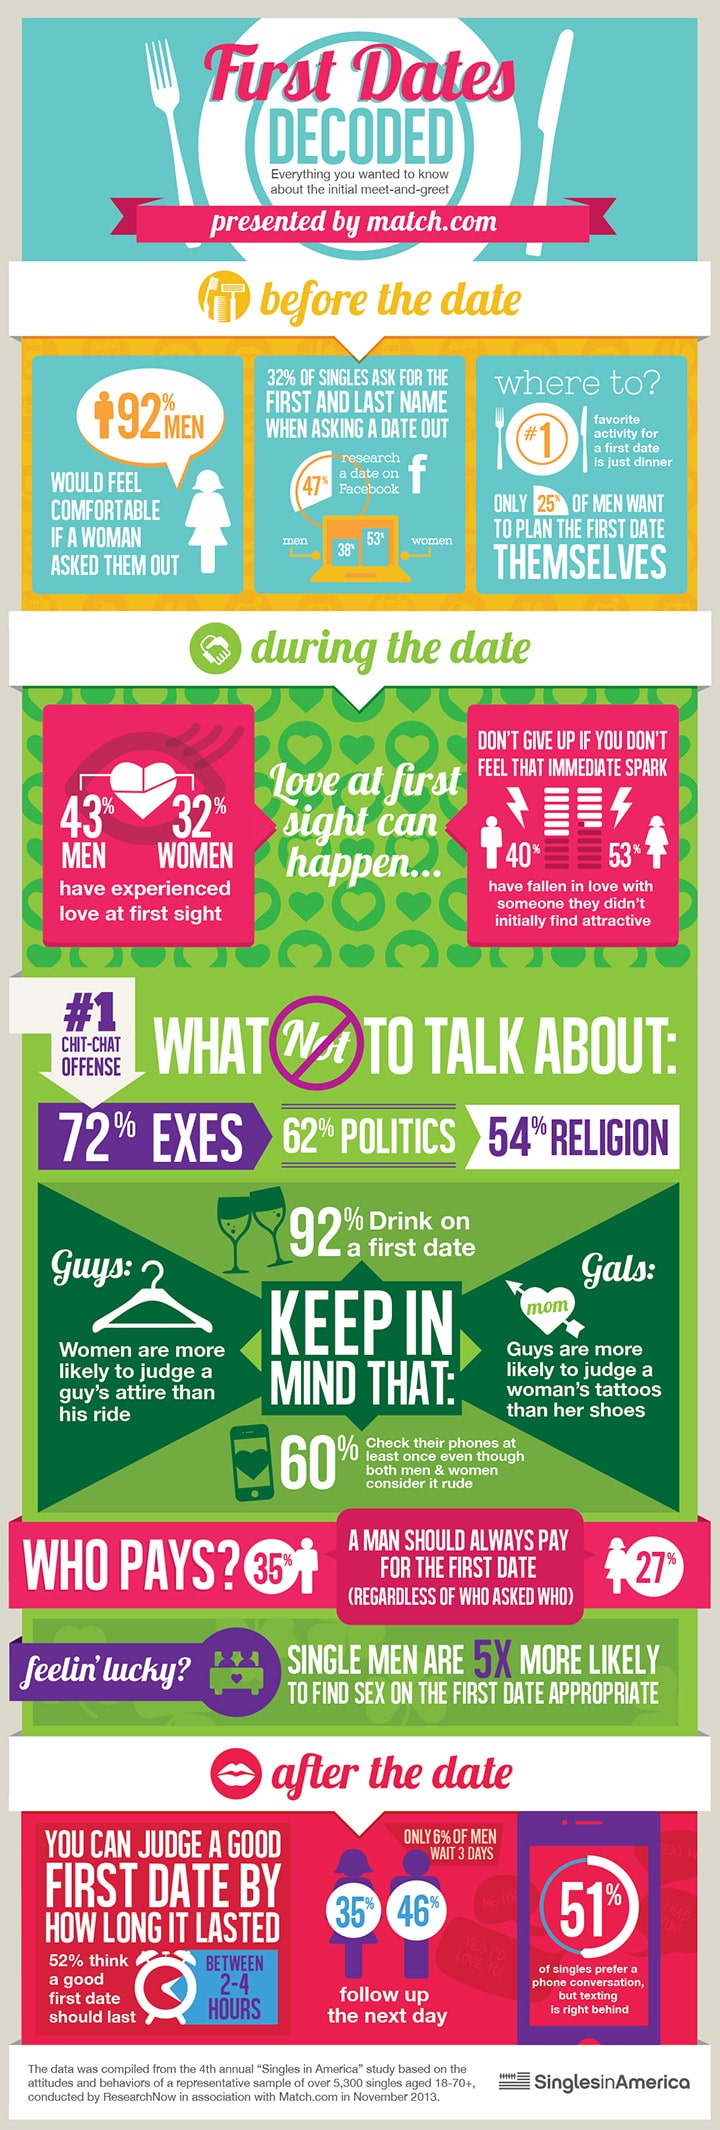 everything you wanted to know about first date